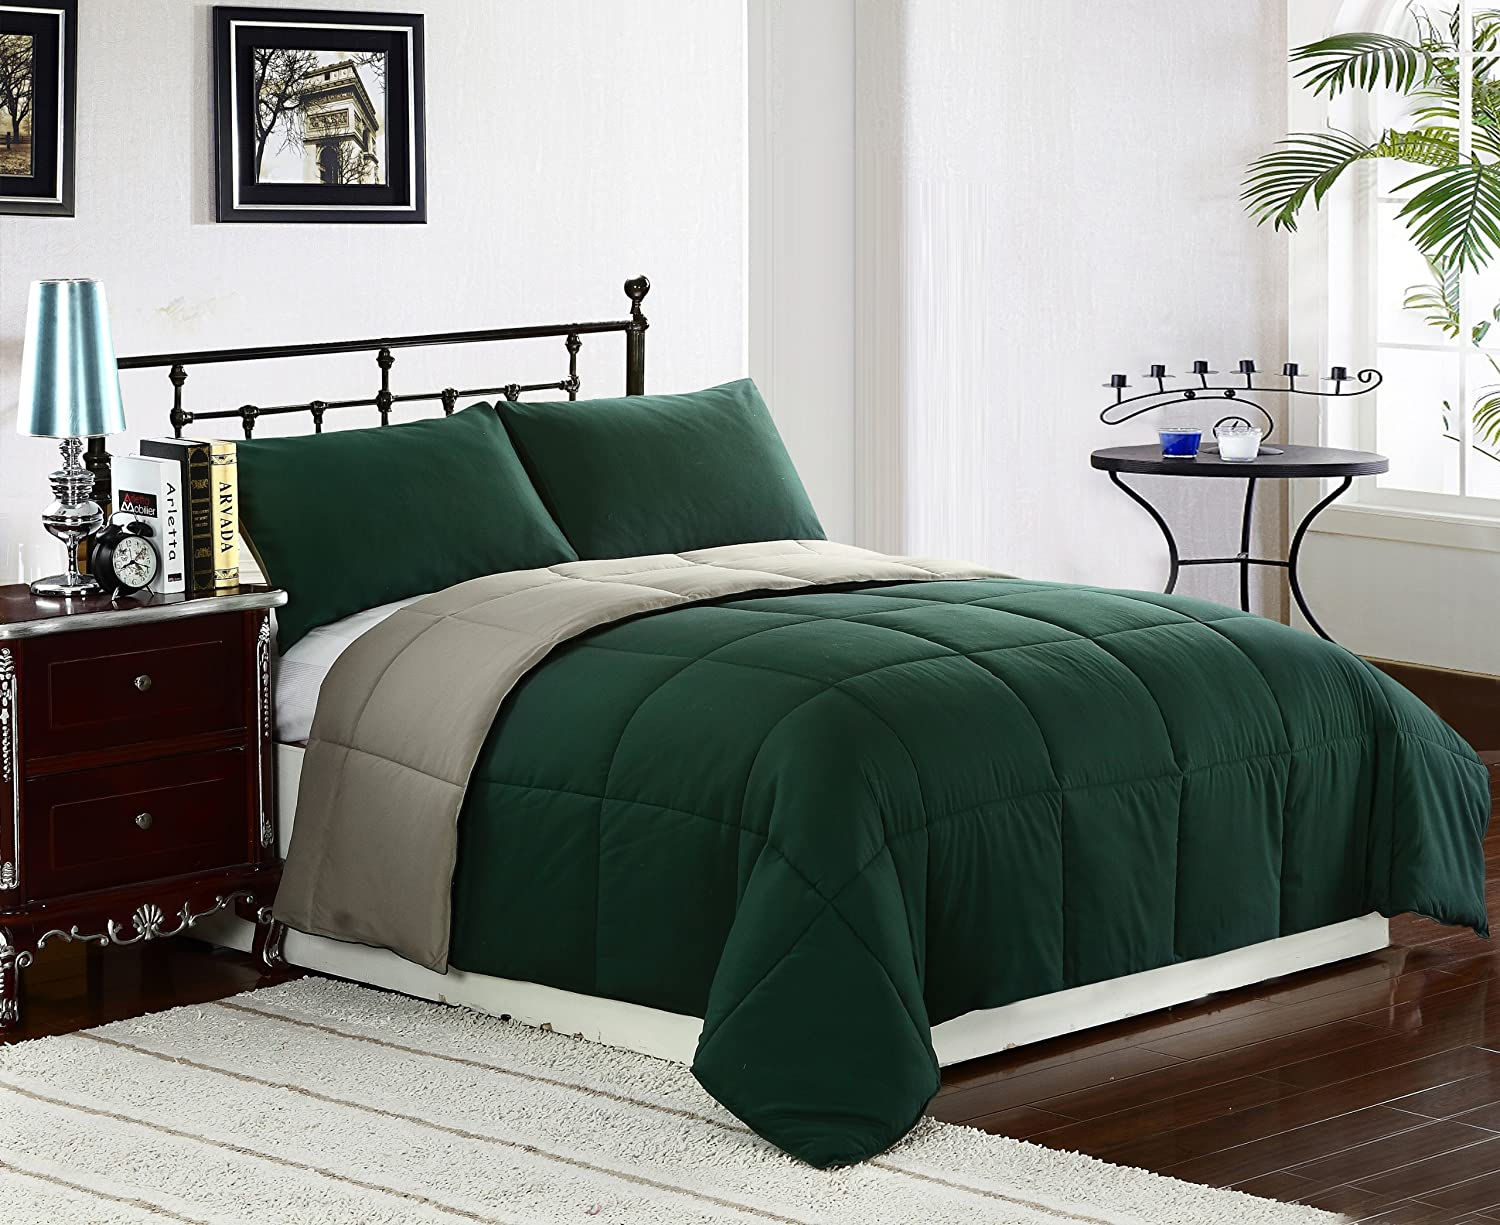 Sage olive and hunter green bedroom decorating ideas seekyt for Bedroom ideas olive green